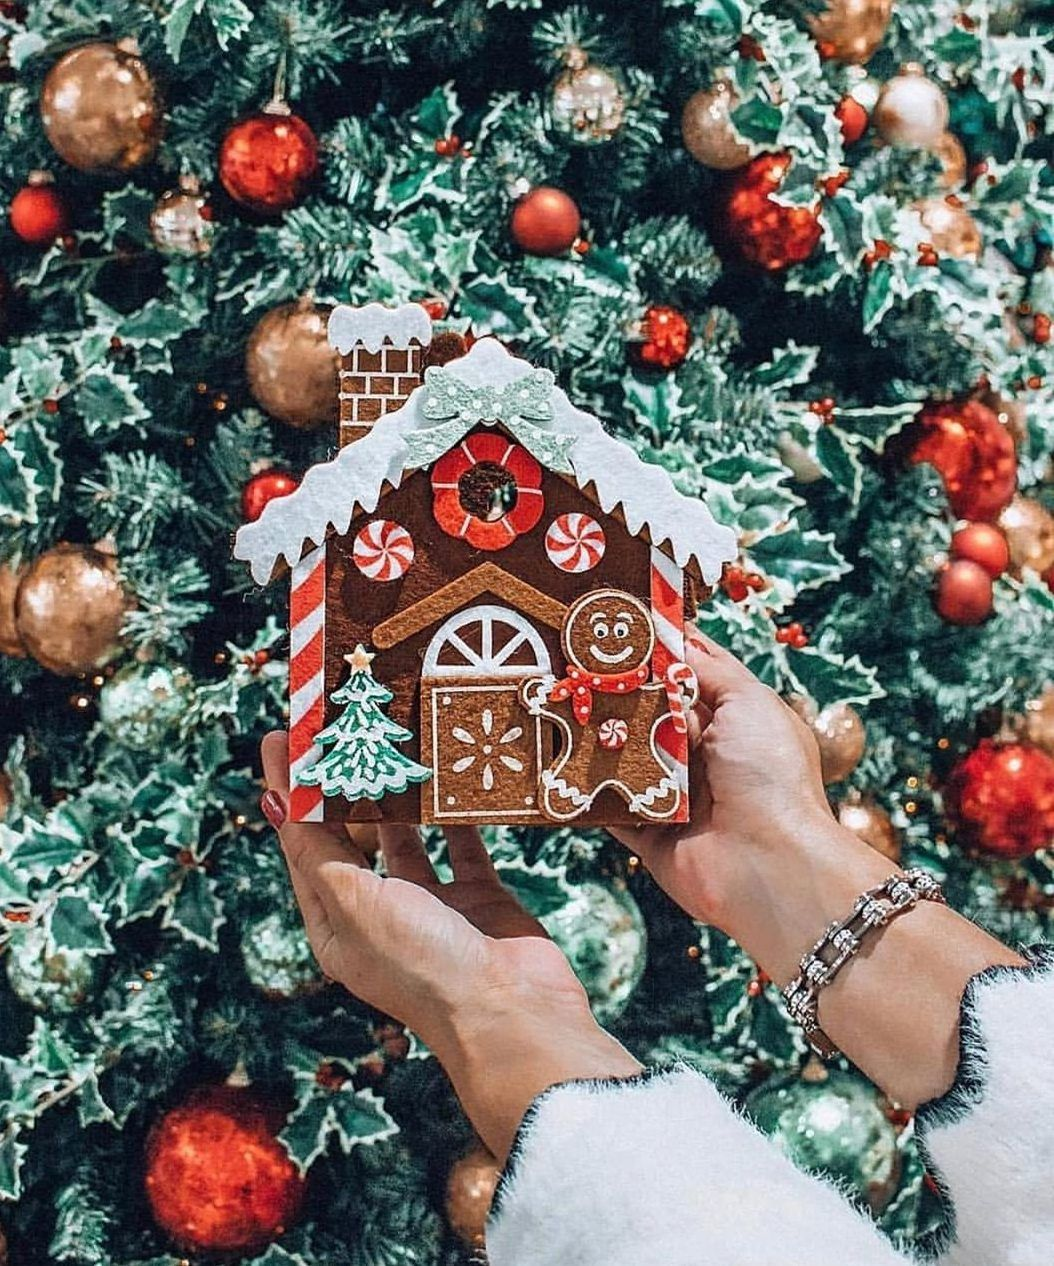 50 Christmas Decorating Ideas For A Joyful Holiday Home Do It Before Me Christmas Decorations Homemade Christmas Decorations Holiday